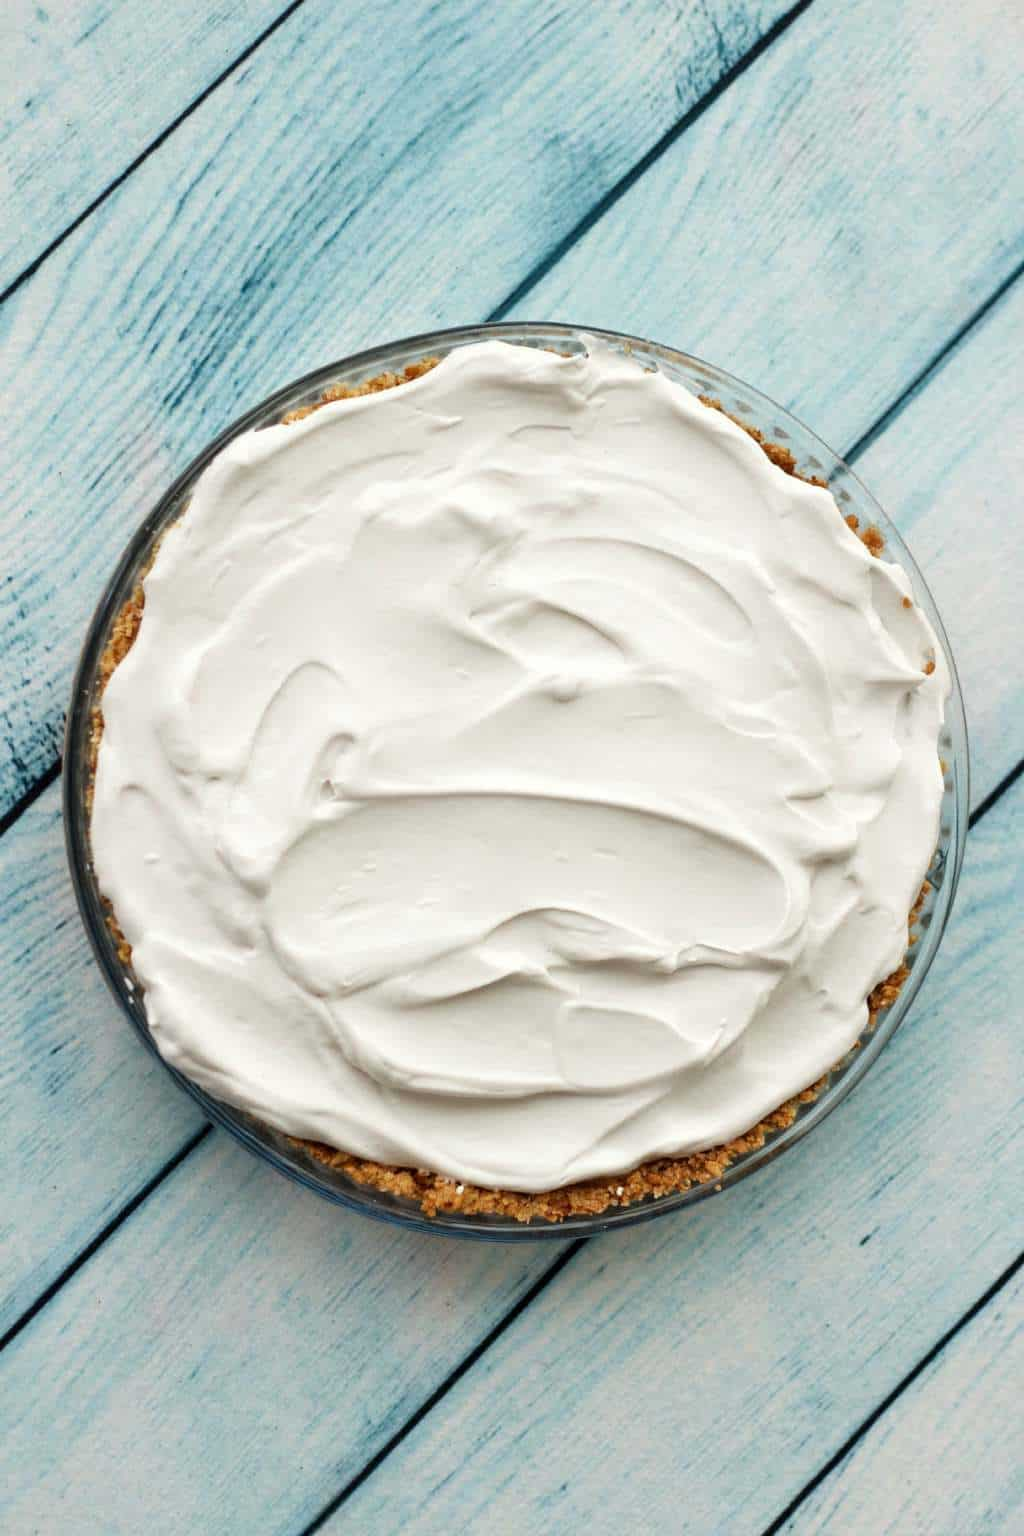 Making A Vegan Caramel Cream Pie - Whipped Coconut Cream Layer